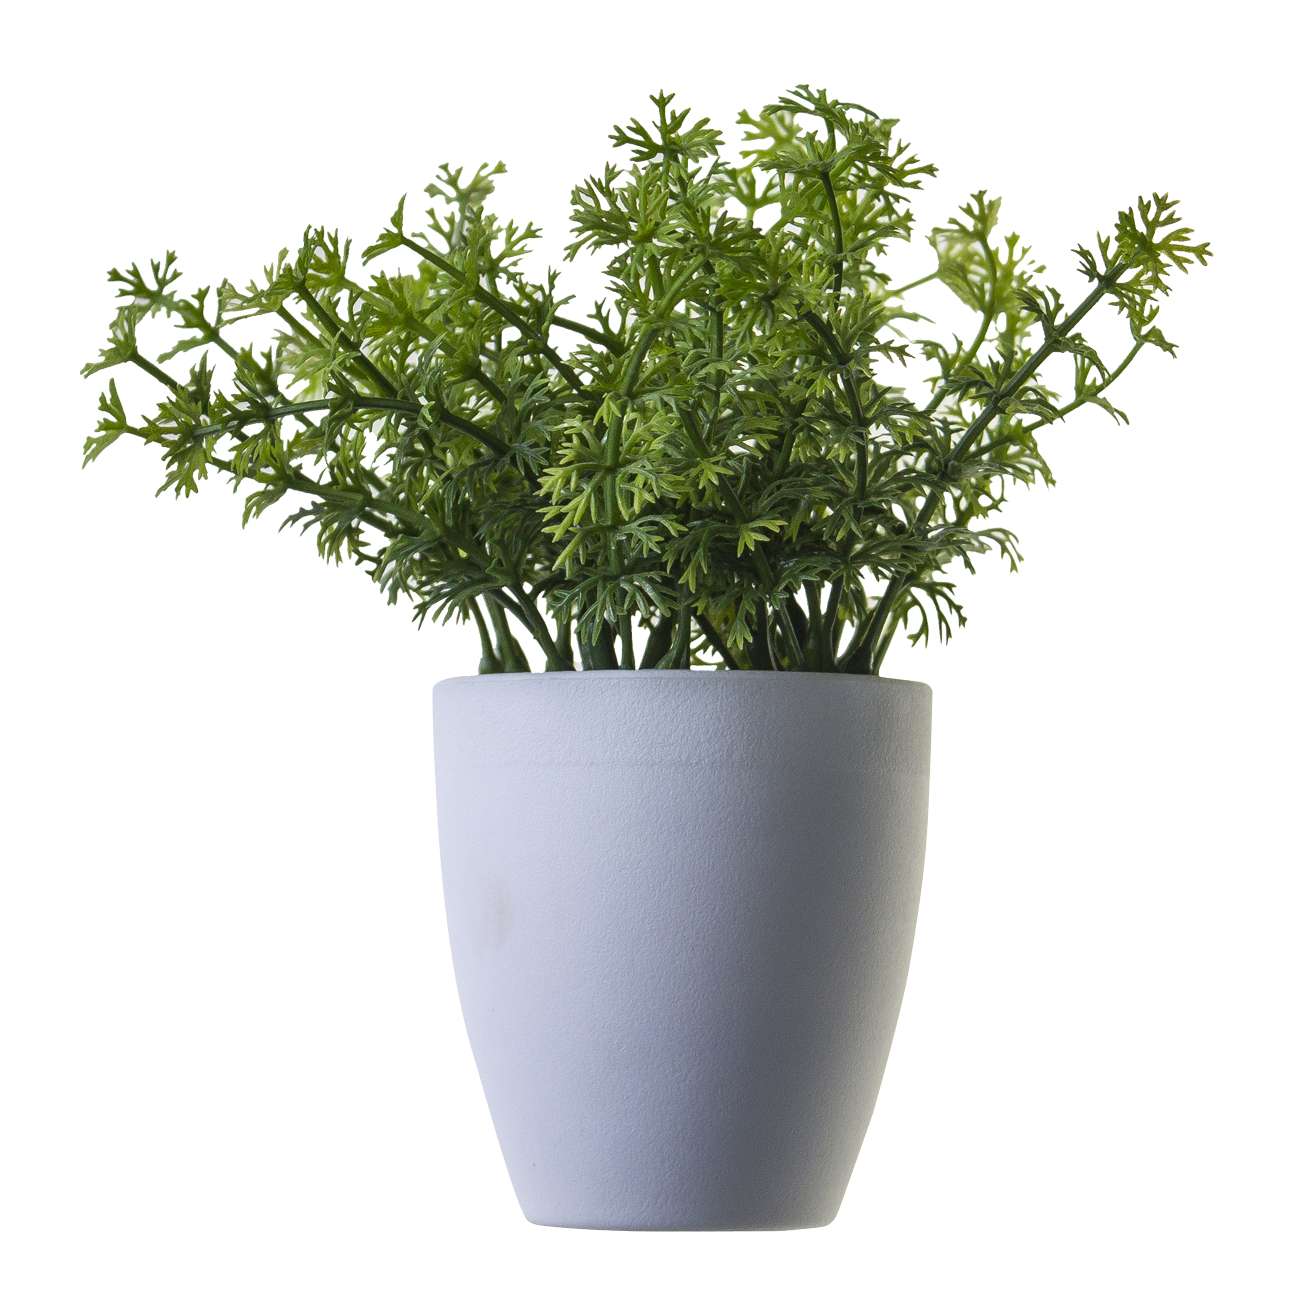 Green plants png. Plant image potted flower